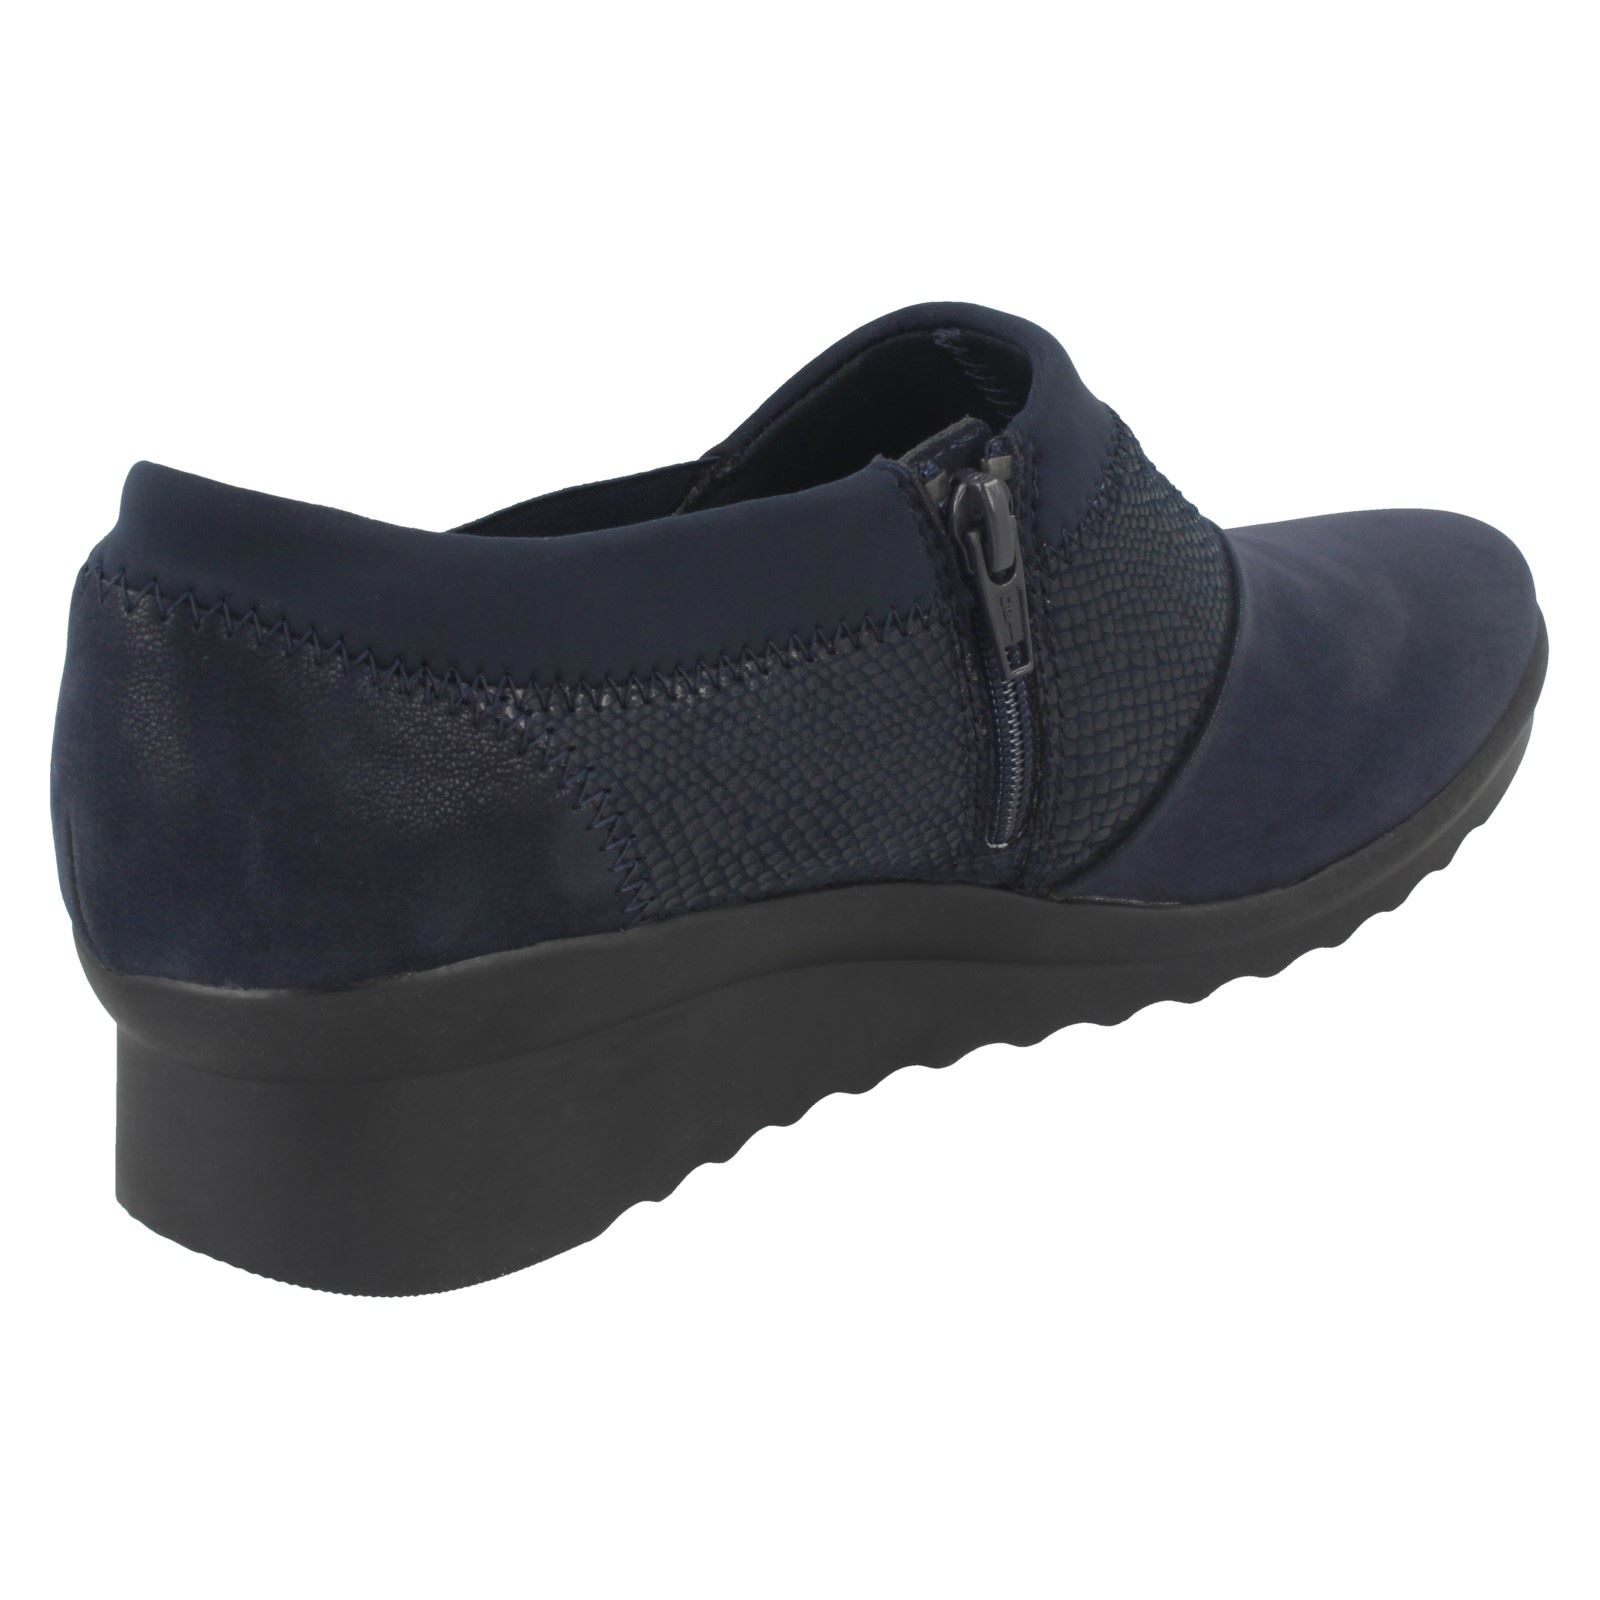 Clarks Ladies Cloudsteppers Cushion Soft Wedge Heeled Shoes - Caddell Denali